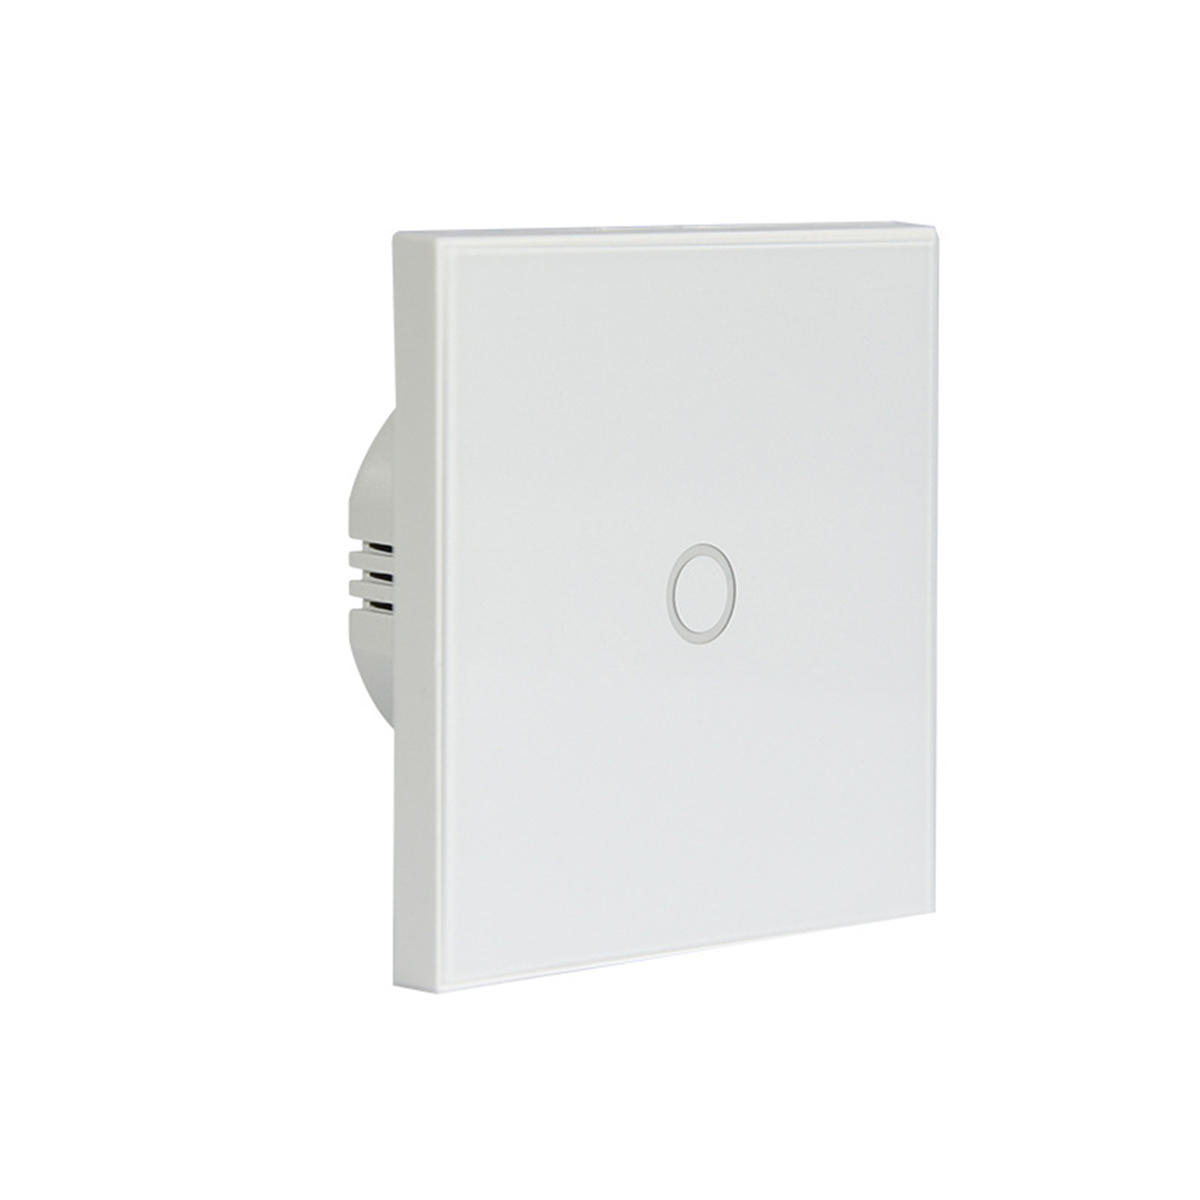 NEO 1Gang WIFI Smart Wall Light Touch Panel Switch App For Alexa Google Home